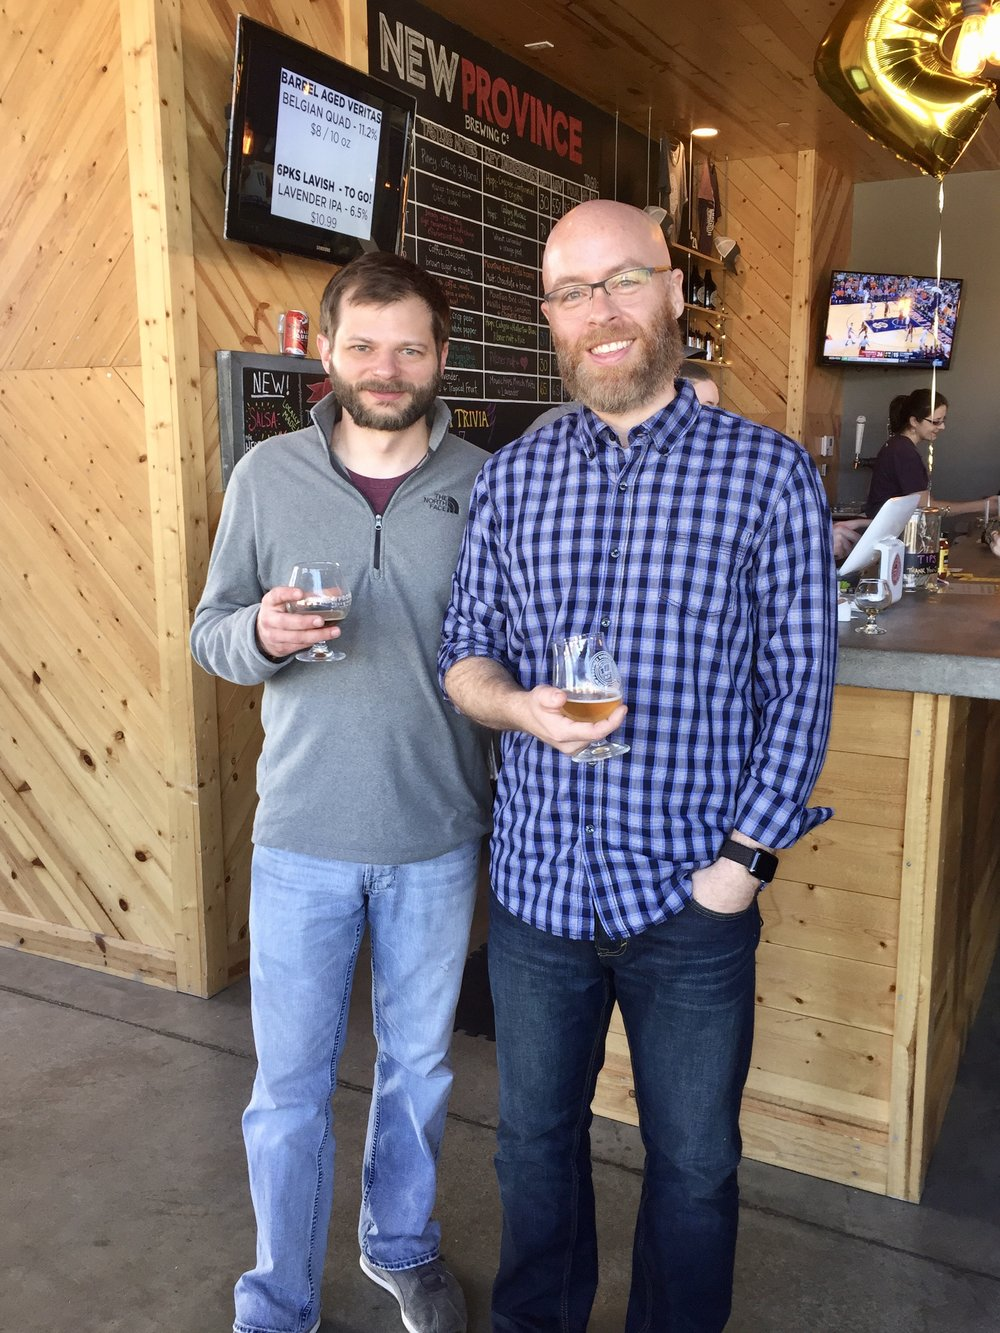 "That's New Province head brewer Kort Castleberry on the left and me on the right. I call this picture, ""Battle of the Beards."" I have since shaved, Kort has not. Has anyone ever seen him without a beard? What's he hiding under there?"